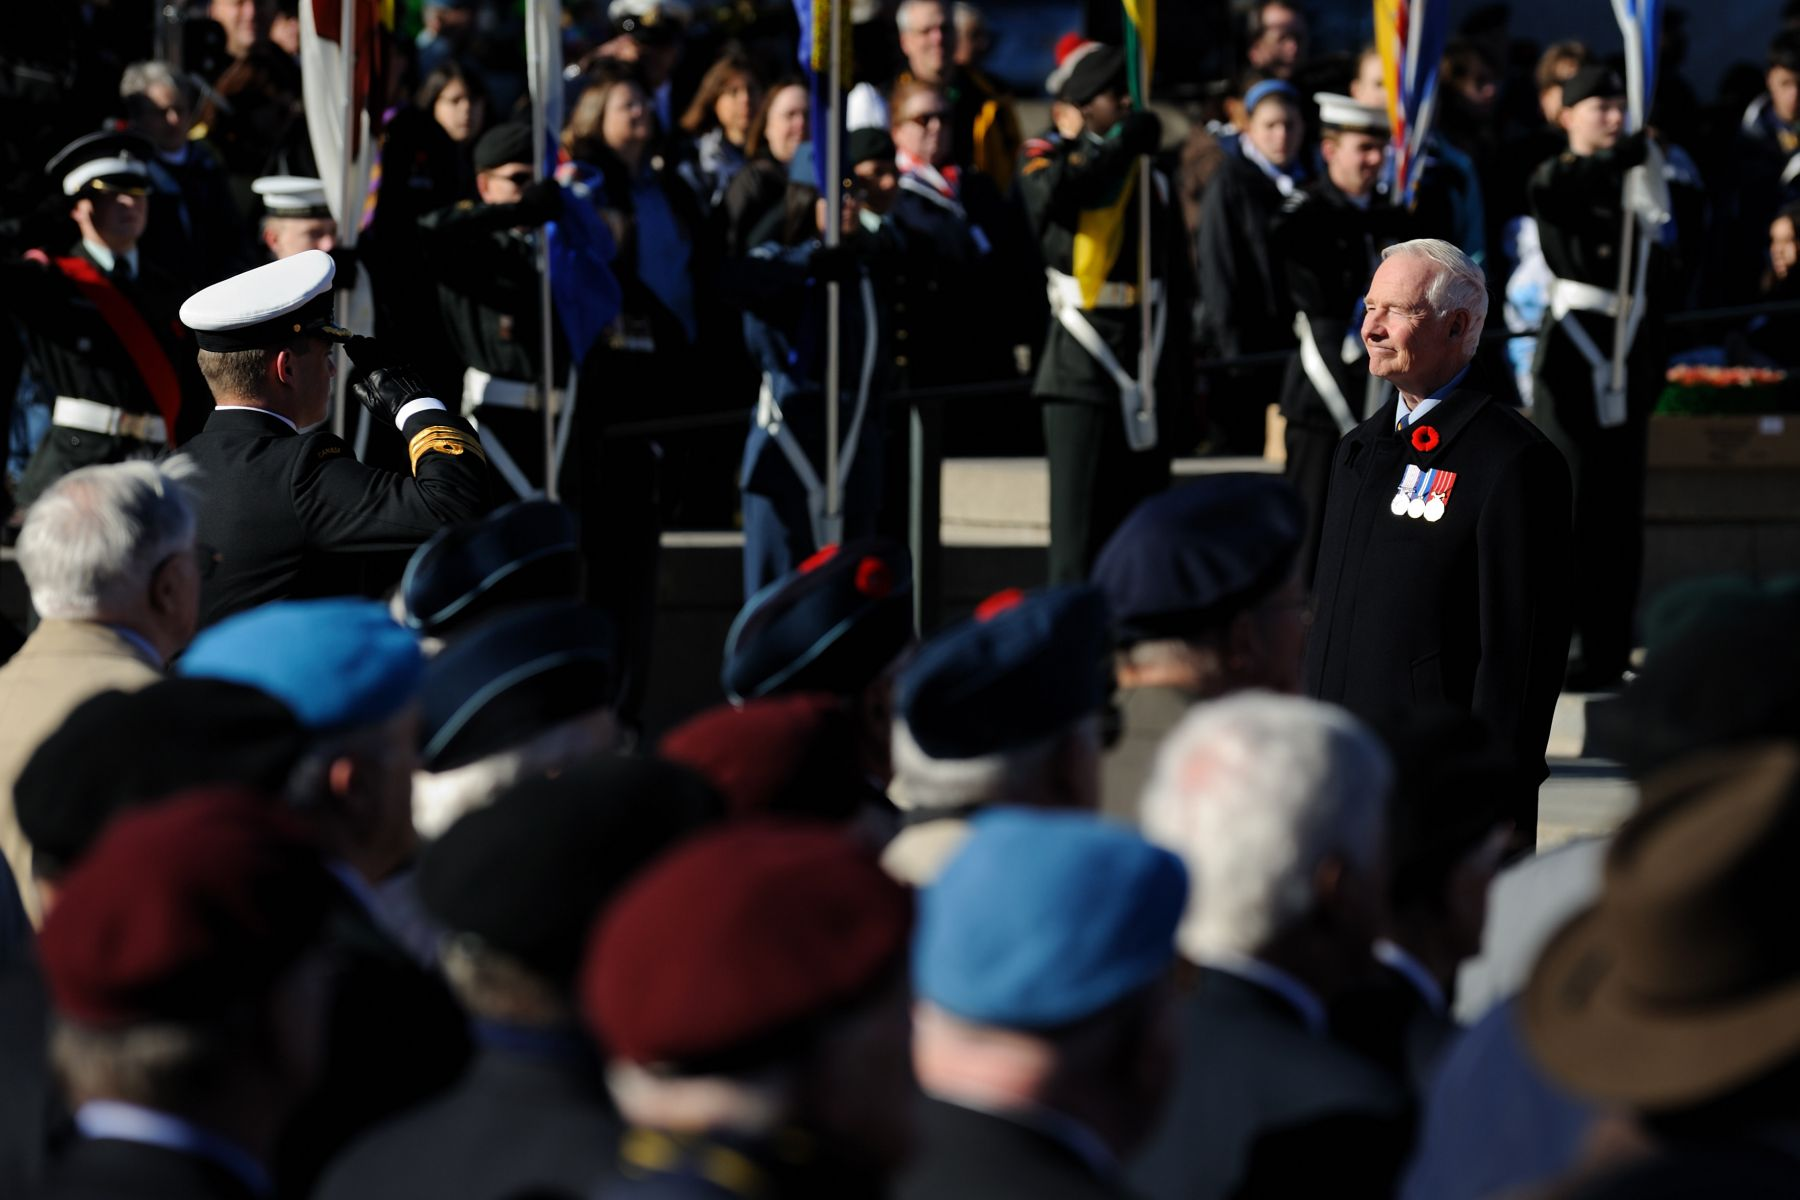 Upon his arrival at the National War Memorial, in Ottawa, he received a vice-regal salute.